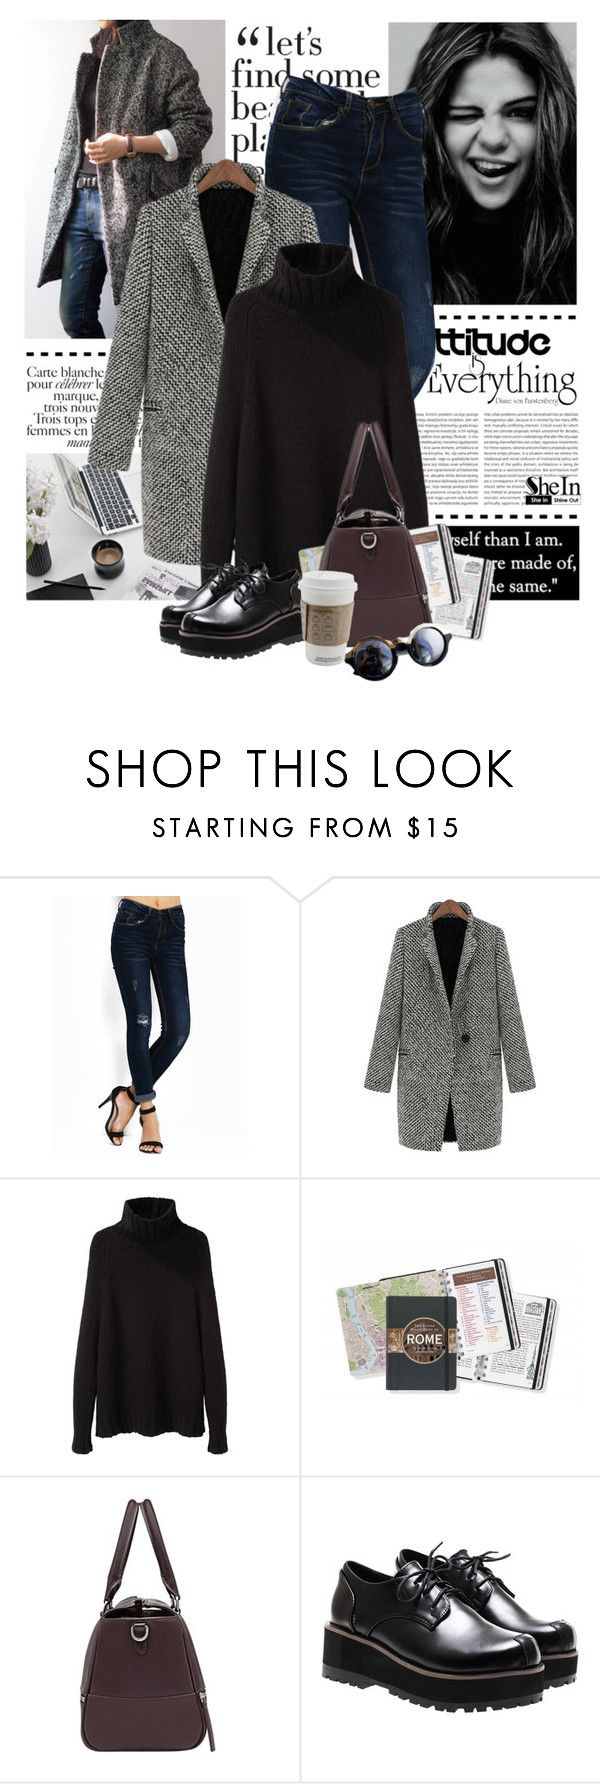 """Shein - Shop"" by yexyka ❤ liked on Polyvore featuring BRONTE and La Garçonne Moderne"